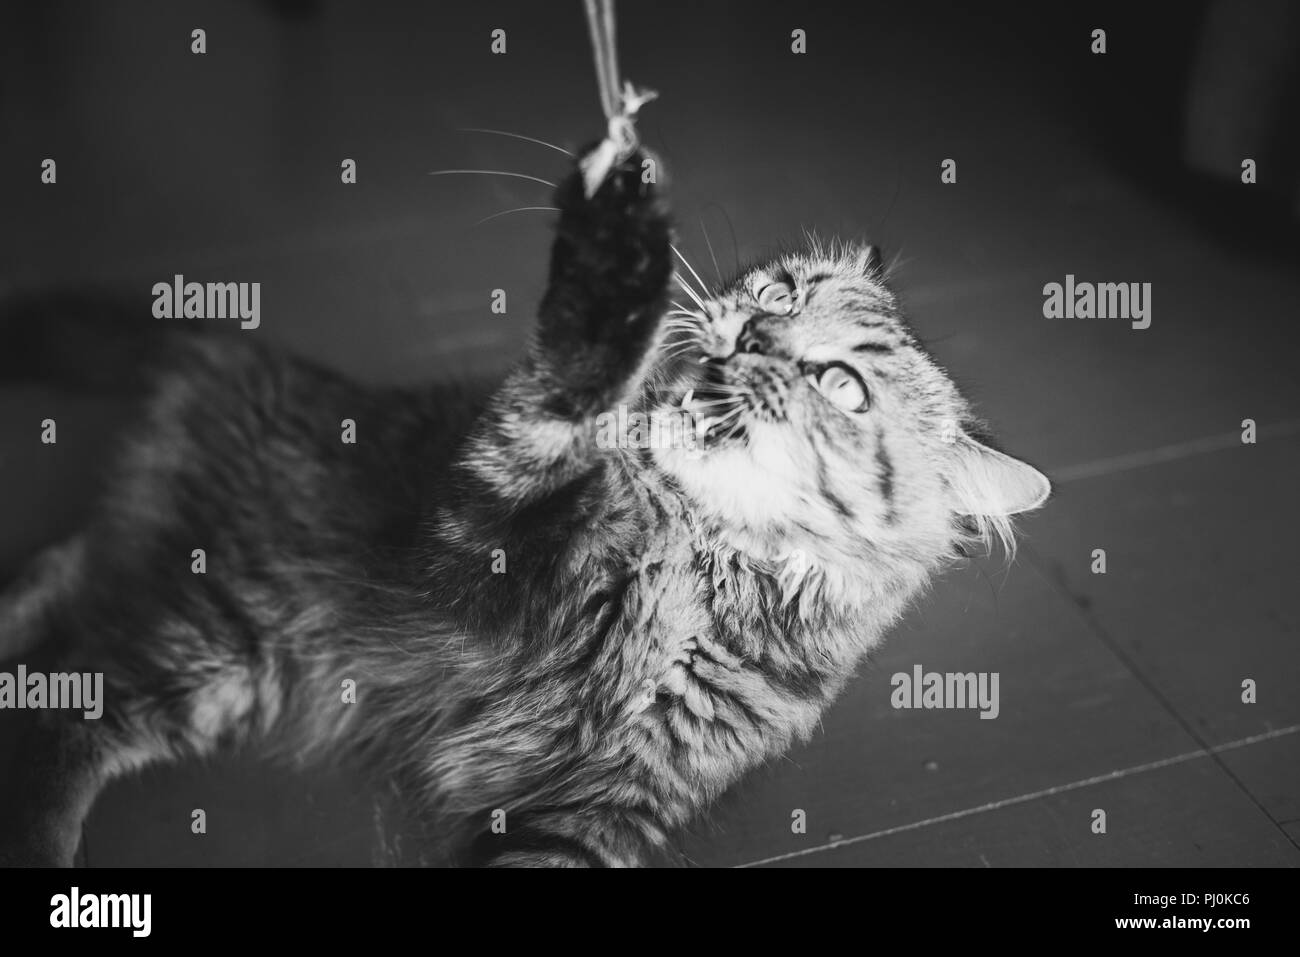 Cat plays with a rope: he caught the end and fiercely pulls it down whereas his master is invisible. - Stock Image